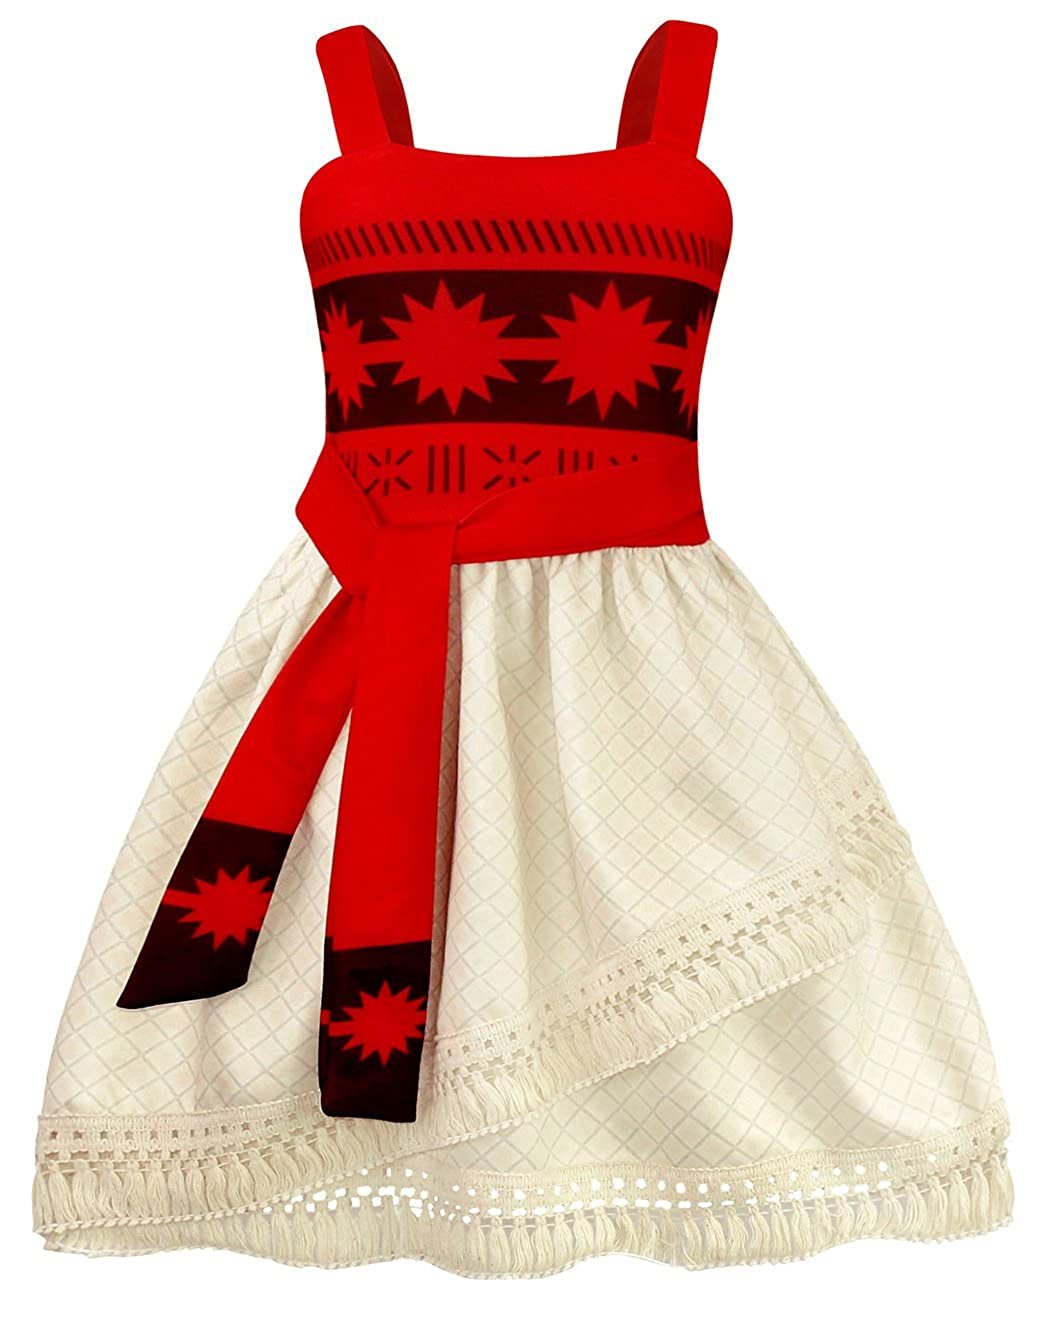 AmzBarley Moana Dress Girls Fancy Party Cosplay Dress up Outfits Halloween Costume Age 1-12 Years